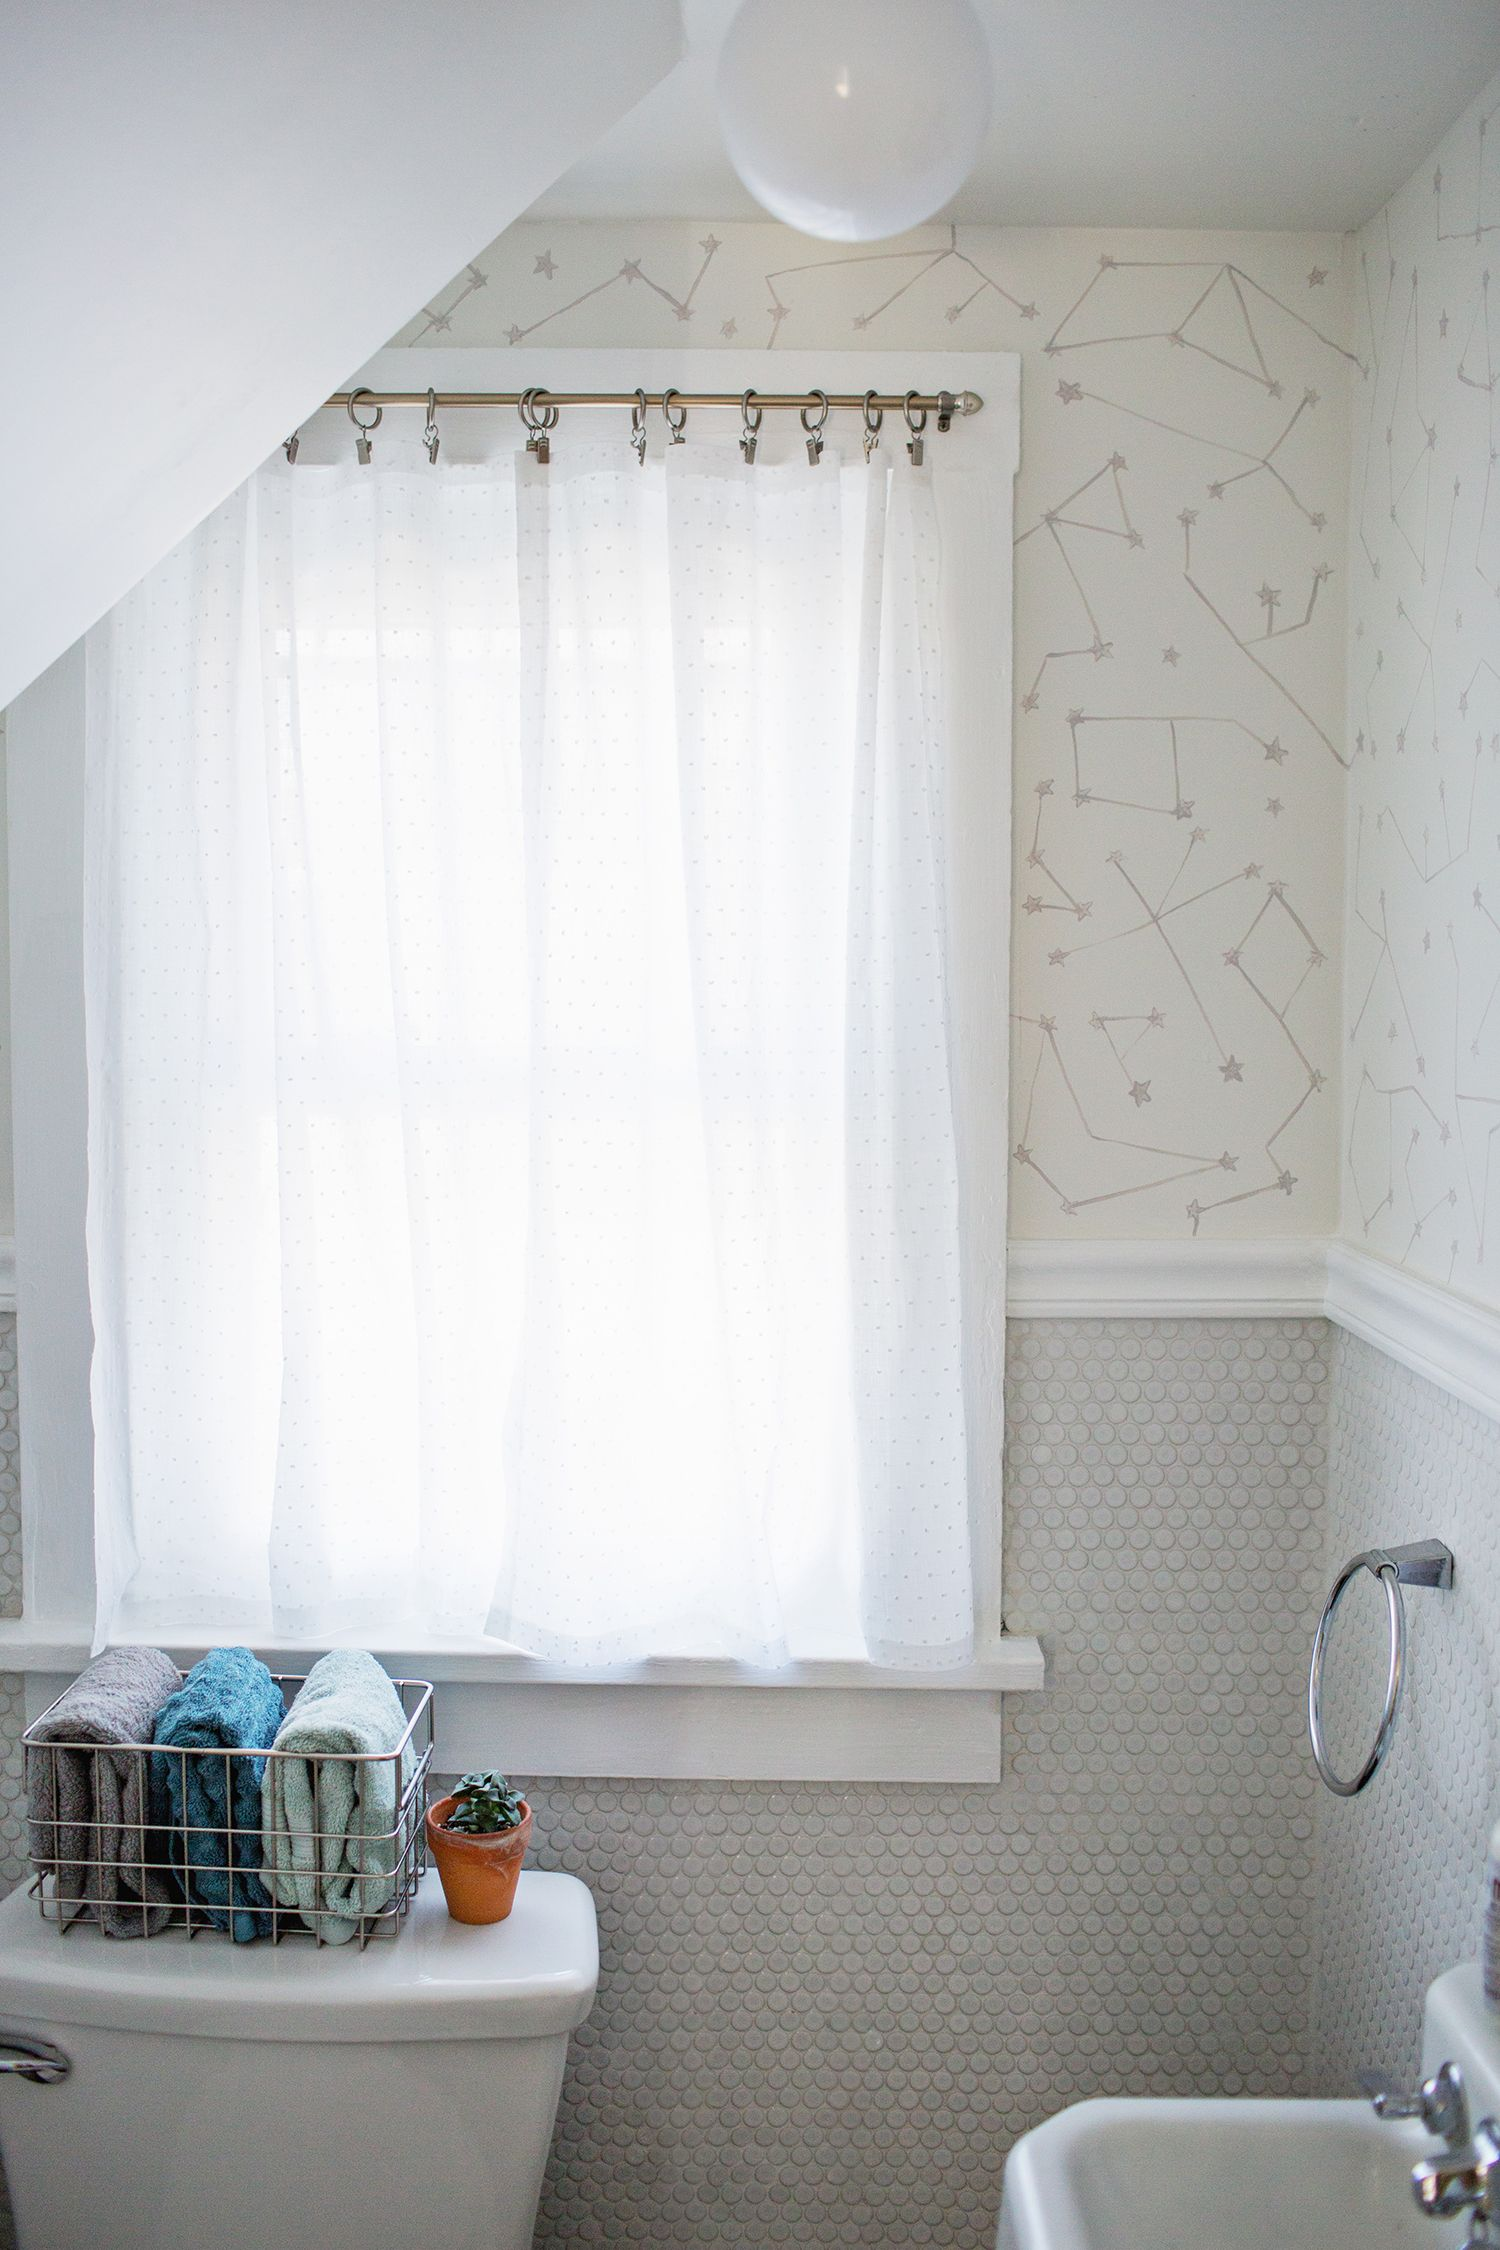 Easy No Sew Curtains Odds And Ends Bathroom Window